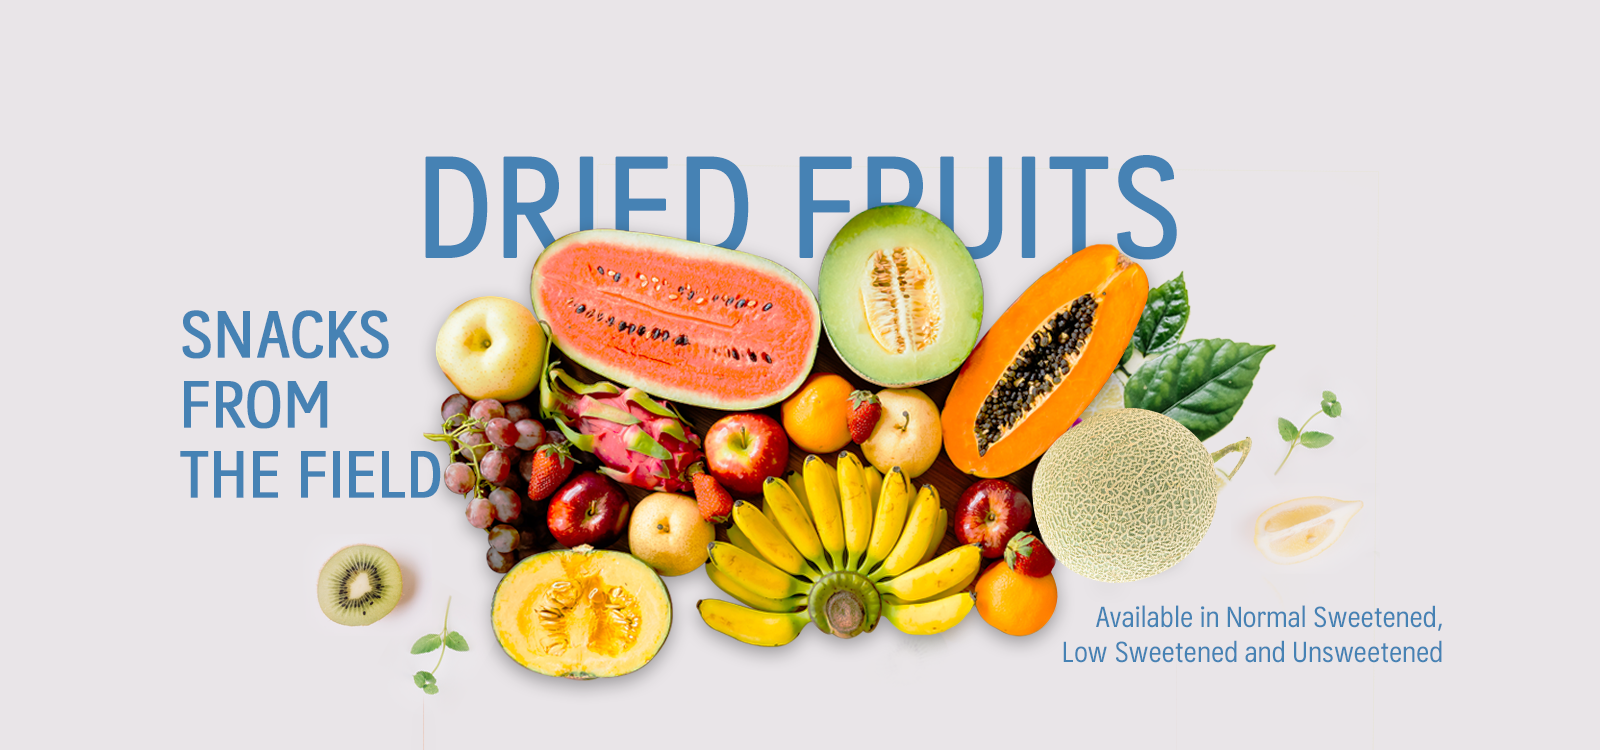 The World of Dried Fruits is just right at your fingertips